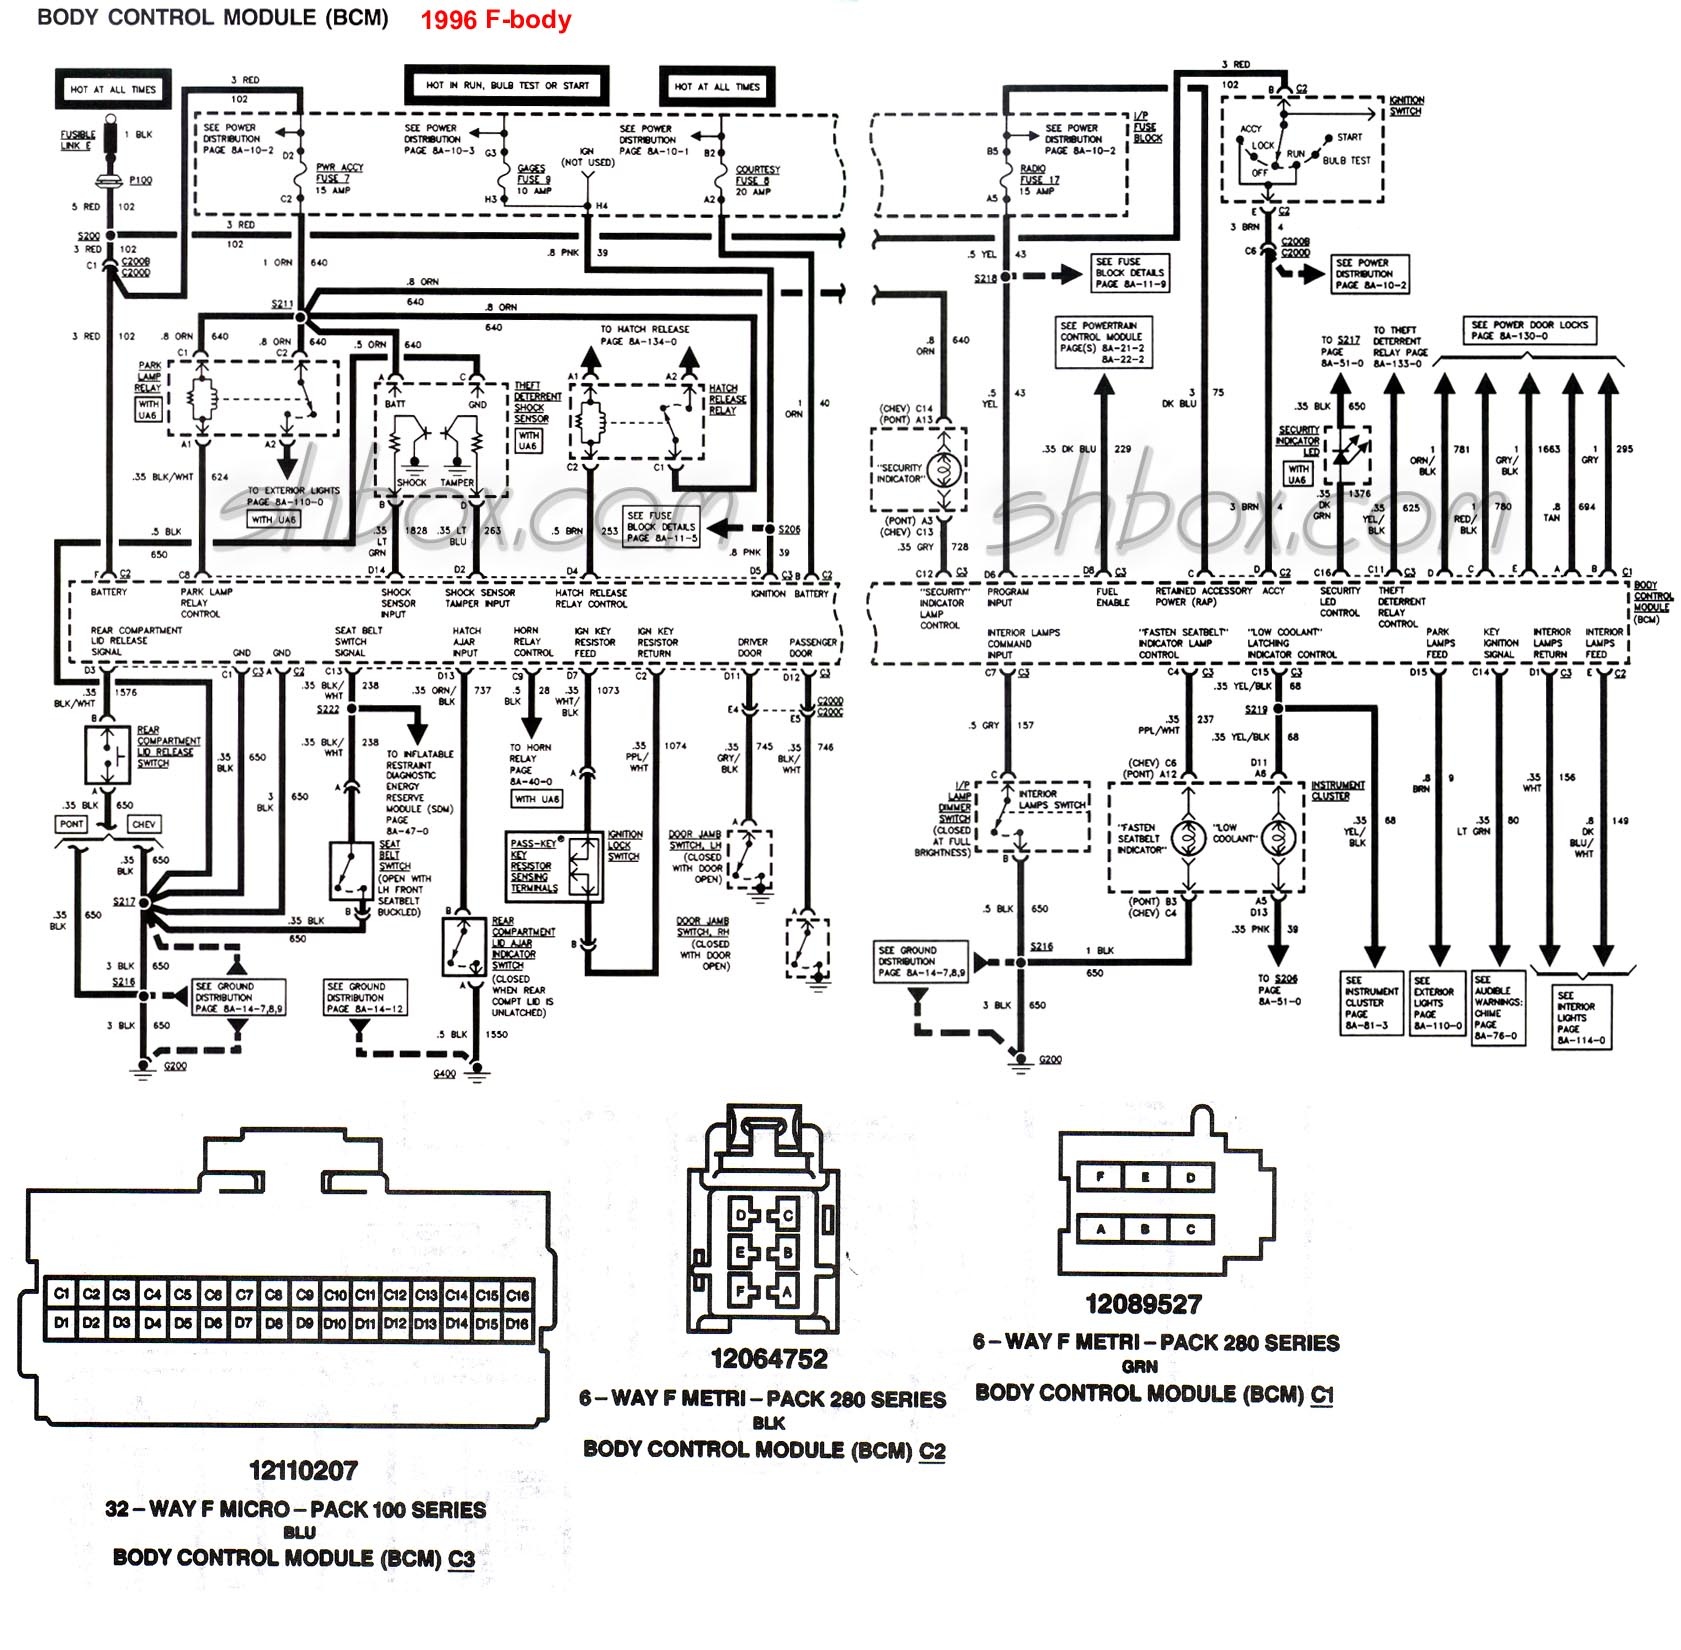 hight resolution of 2008 chevy silverado body diagram simple wiring schema silverado bcm wiring diagram along with 2008 mustang fuse box diagram